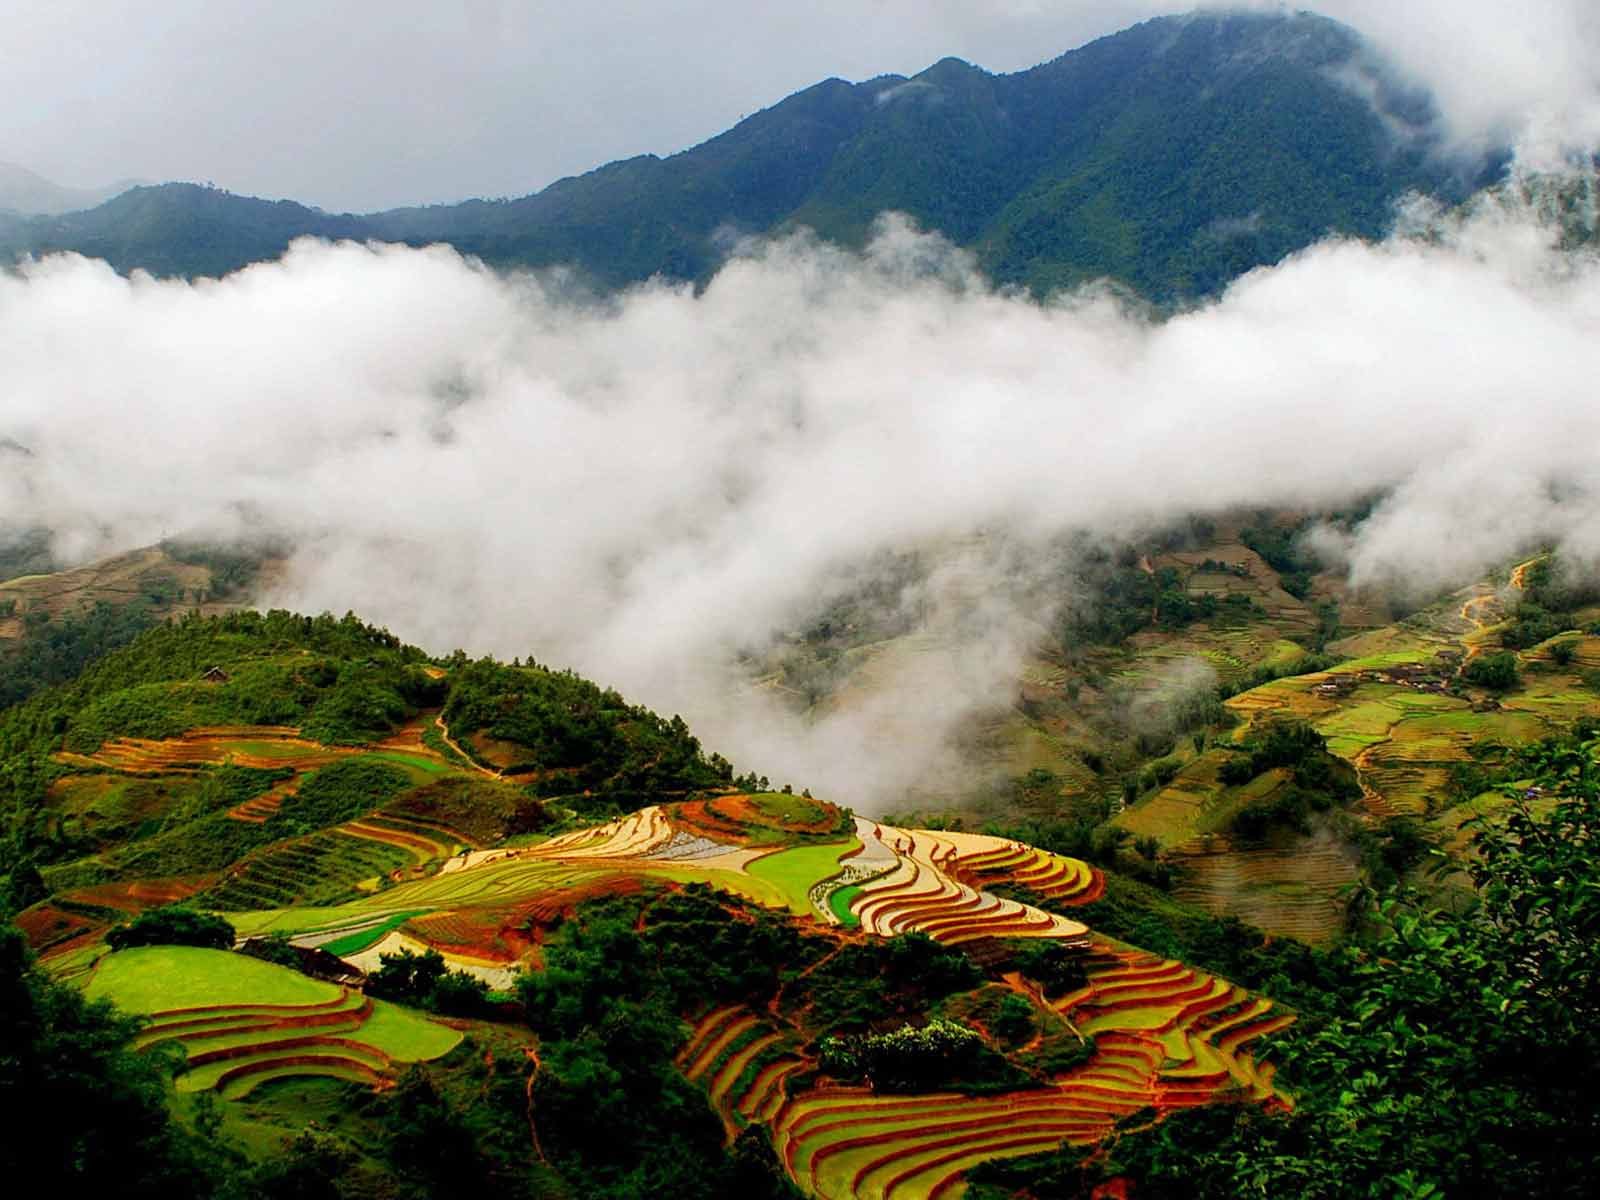 Around the town of Sapa is the mysterious village